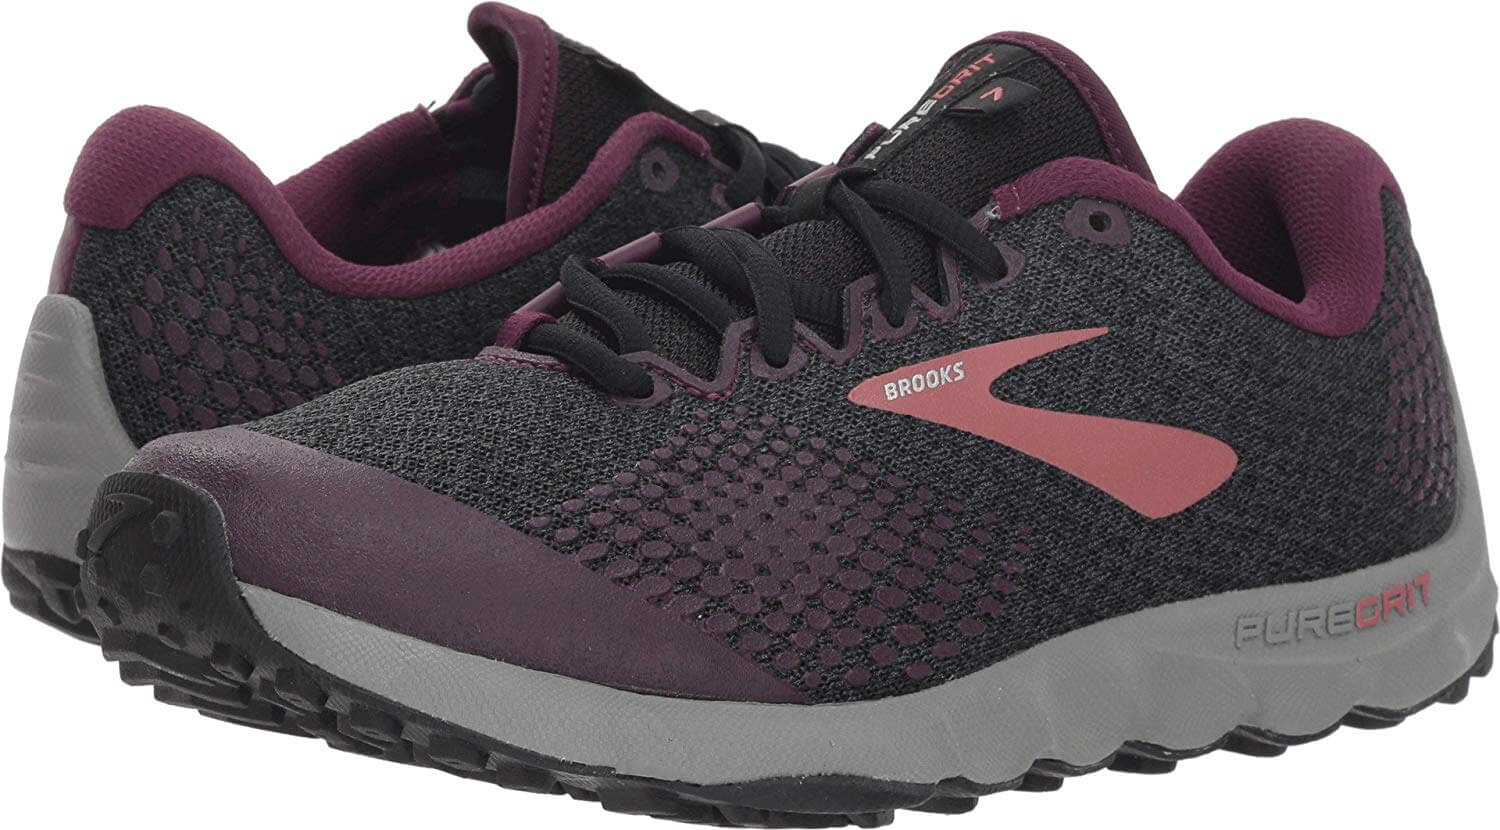 a2741ed7be192 Brooks PureGrit 7 Reviewed - To Buy or Not in May 2019